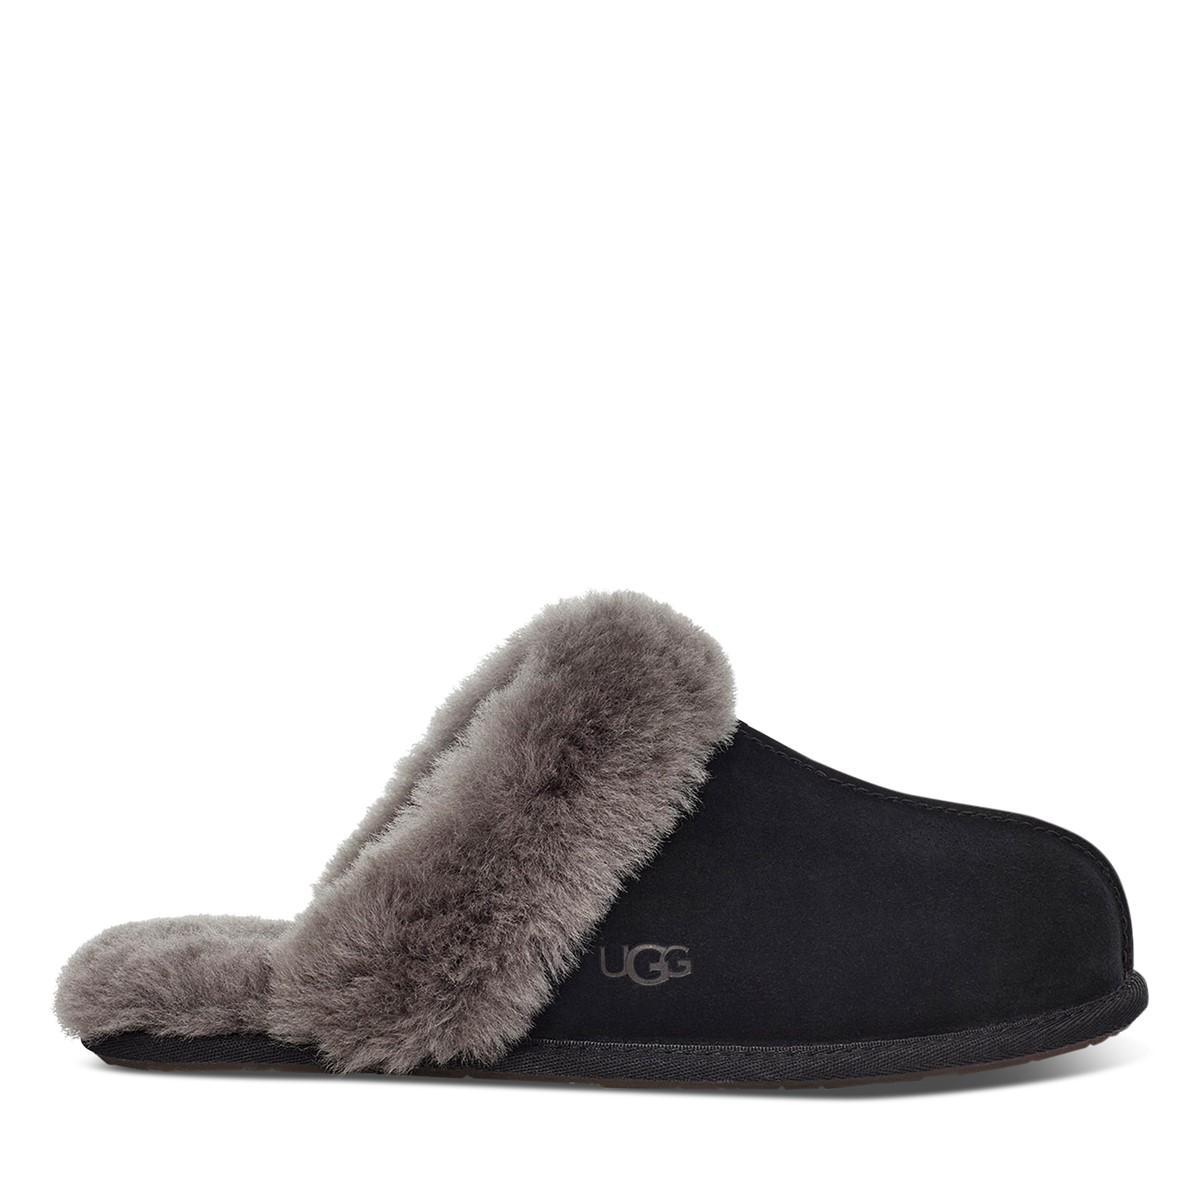 Women's Scuffette II Slippers in Black